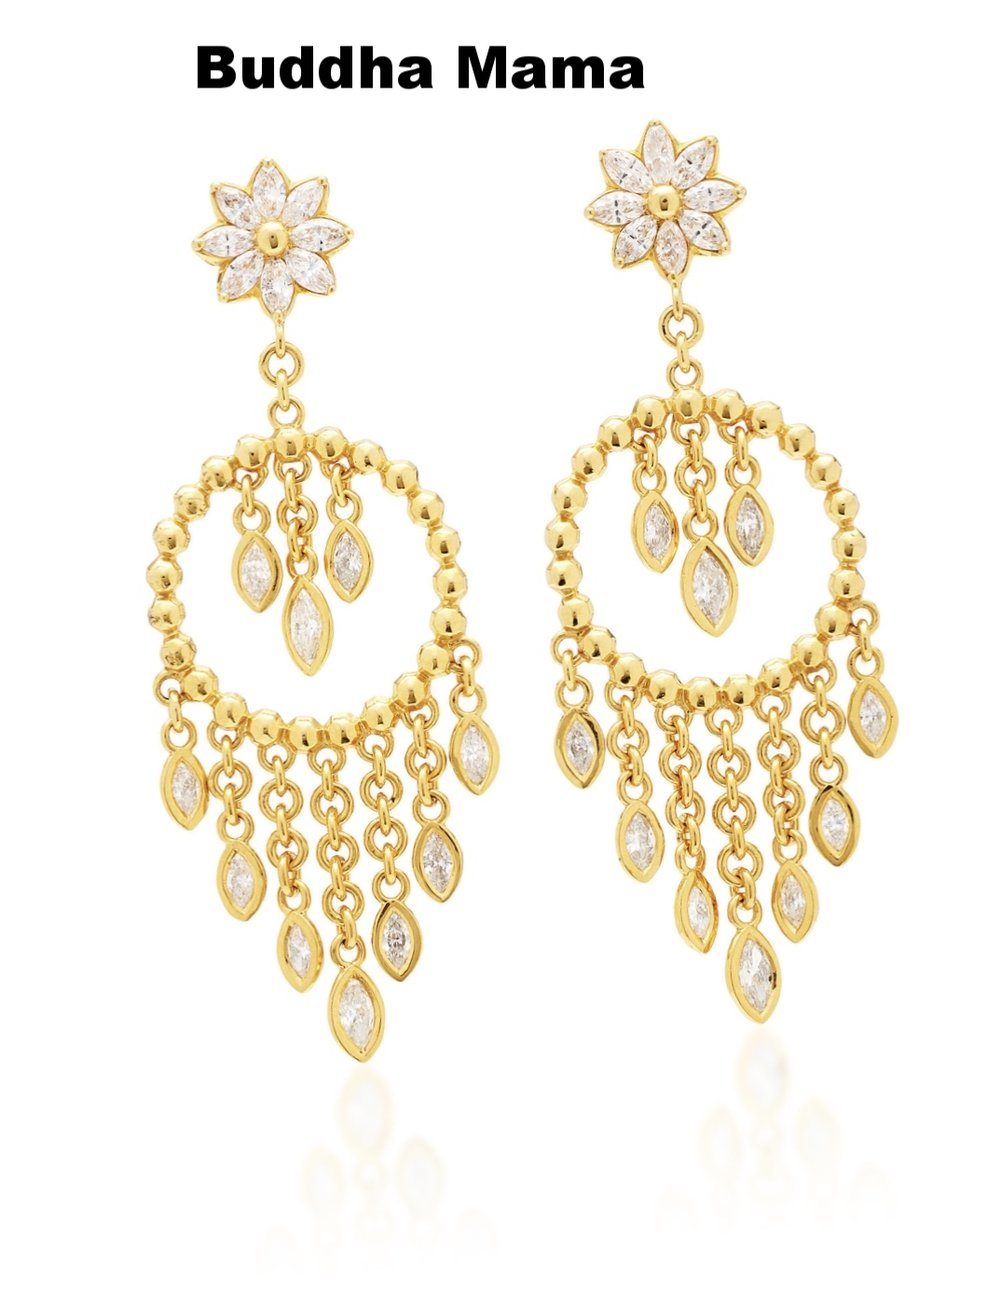 Diamonds are always a good idea. And while studs are always a chic choice, if you're a hoping for an epic look that stands alone, these chandelier earrings are a must-have. And once your big day is over, you can wear these with anything from jeans to sundresses.